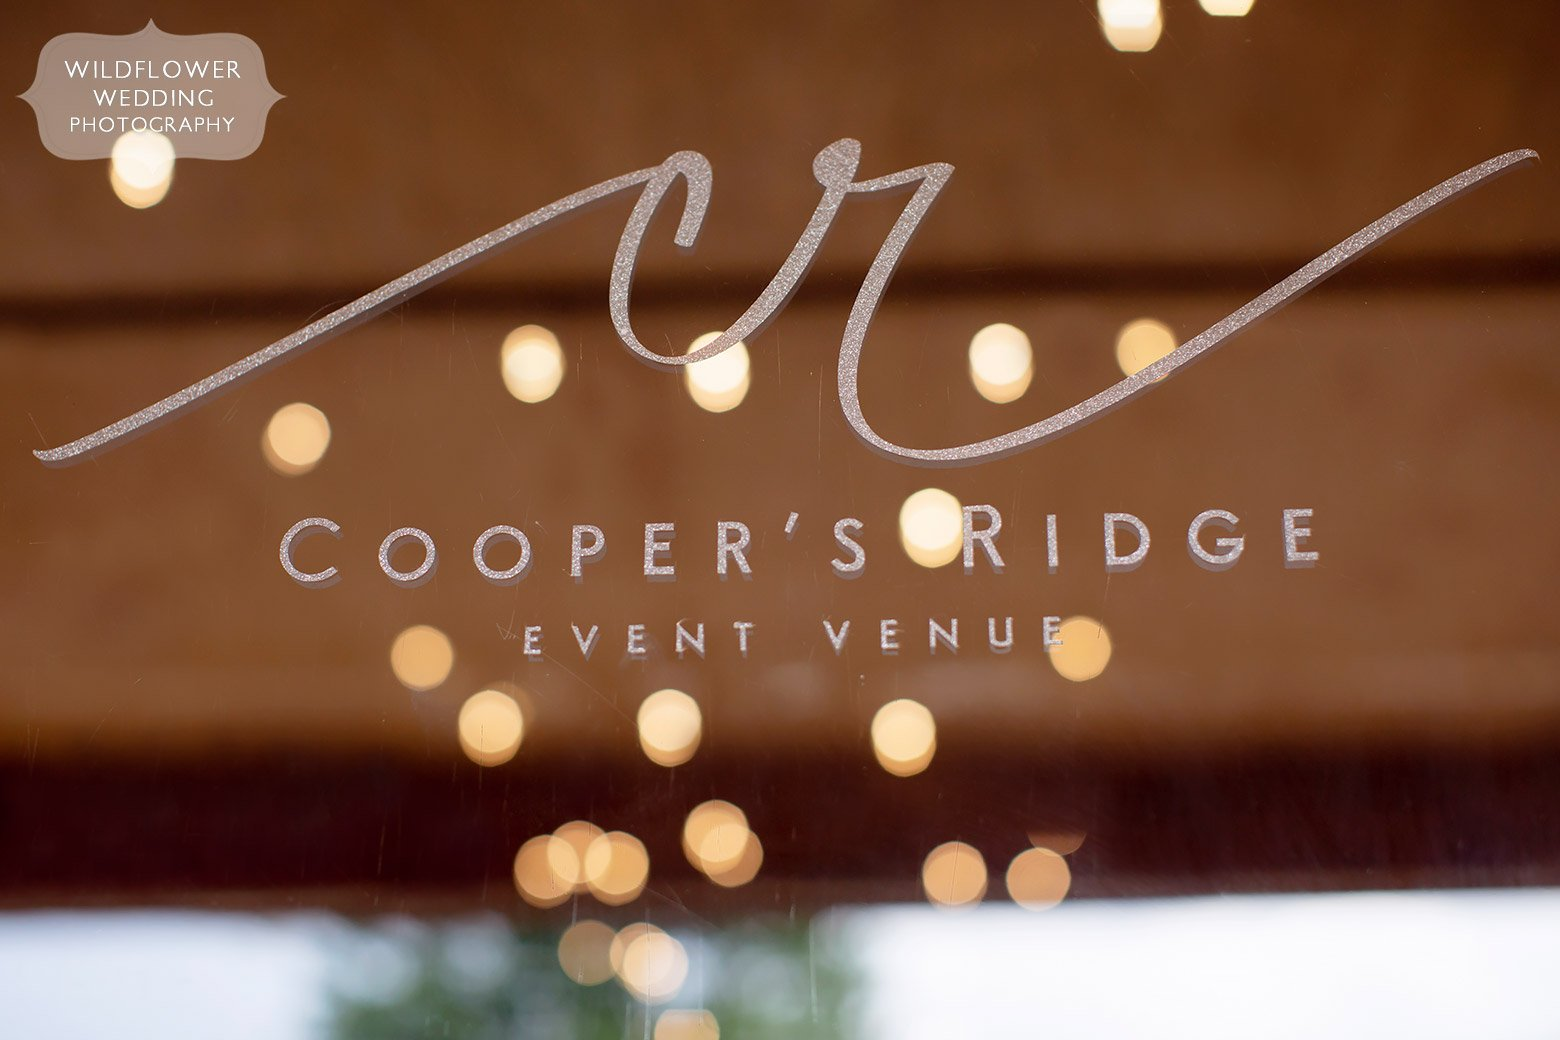 Cooper's Ridge barn wedding venue in the country at Boonville.